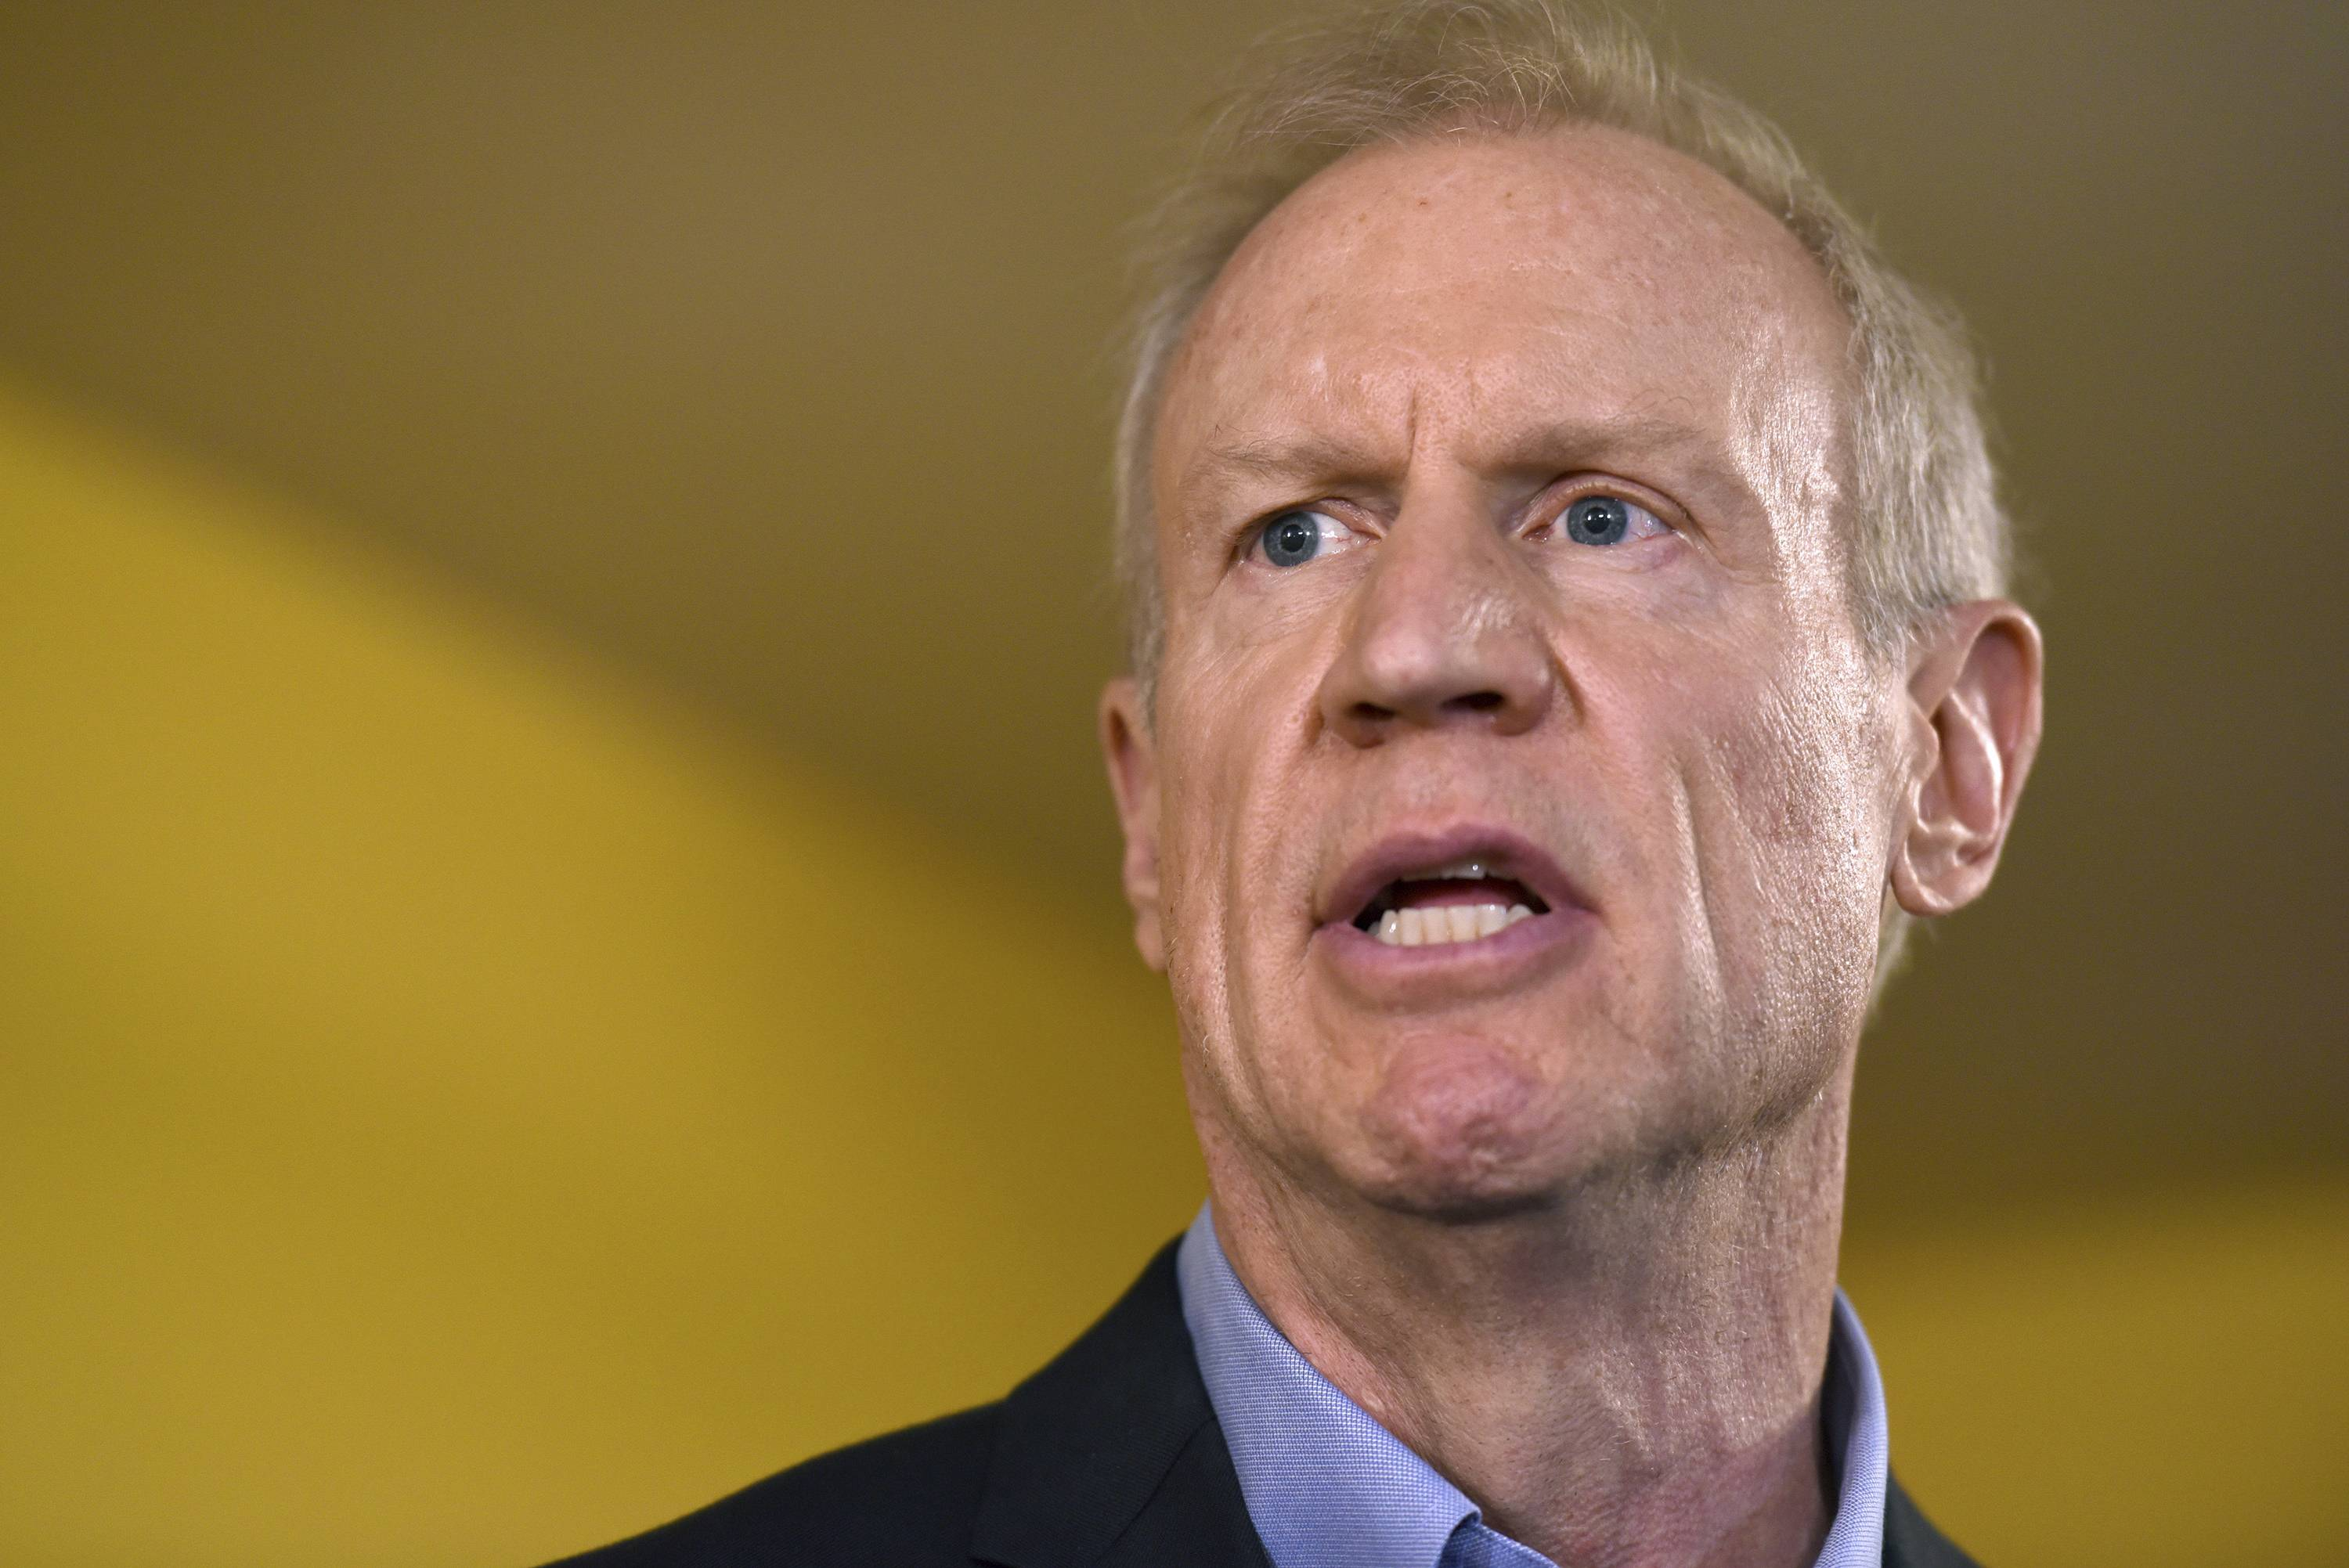 Illinois Gov. Bruce Rauner told a crowd in the South suburbs he will work to stop the practice of state lawmakers representing homeowners who want to appeal their property taxes.